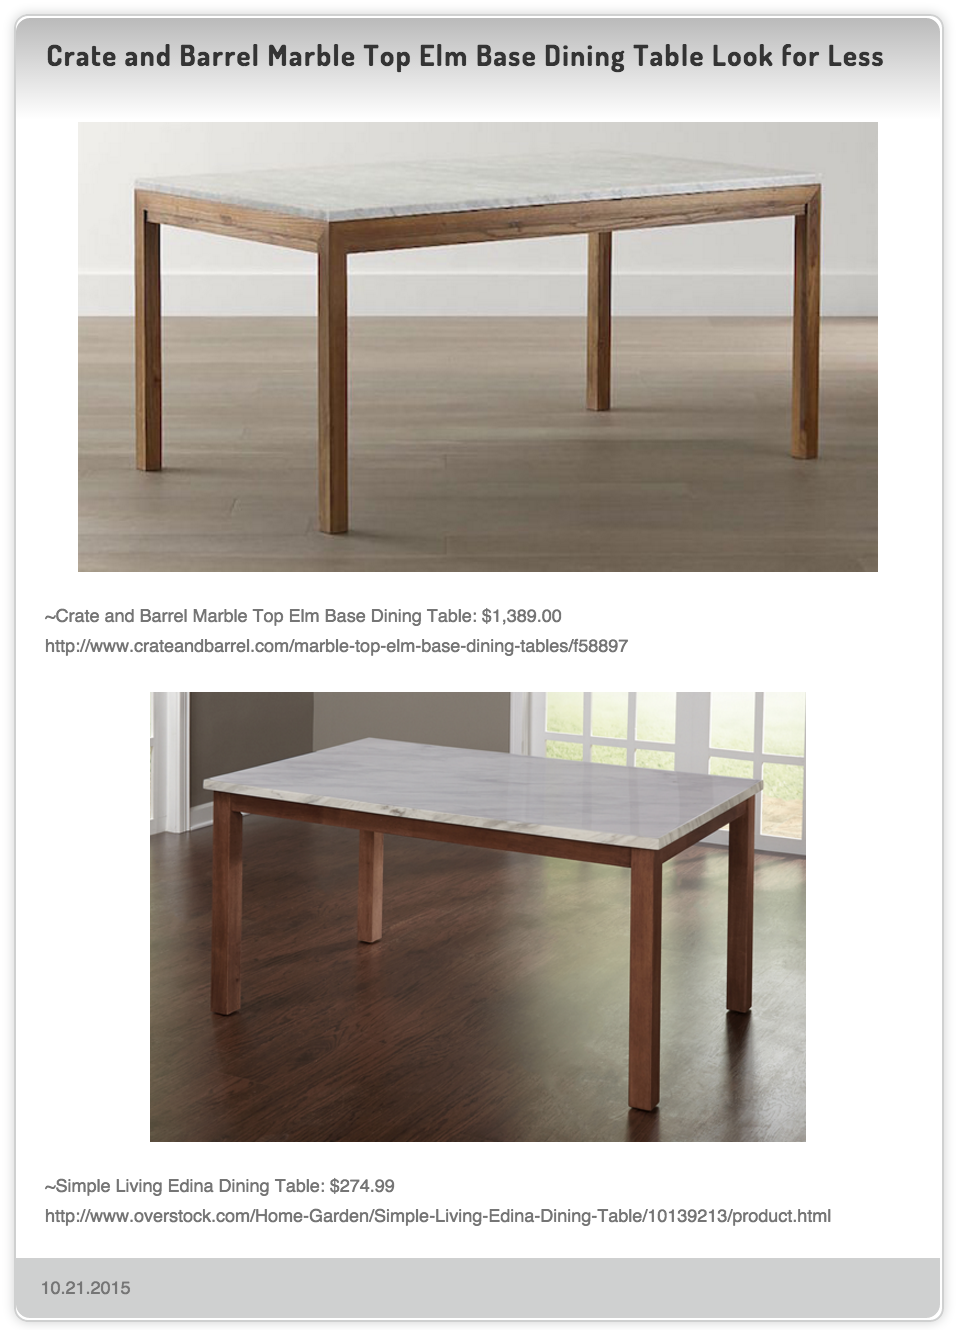 Crate And Barrel Marble Top Elm Base Dining Table $1,389.00 Vs Simple  Living Edina Dining Table